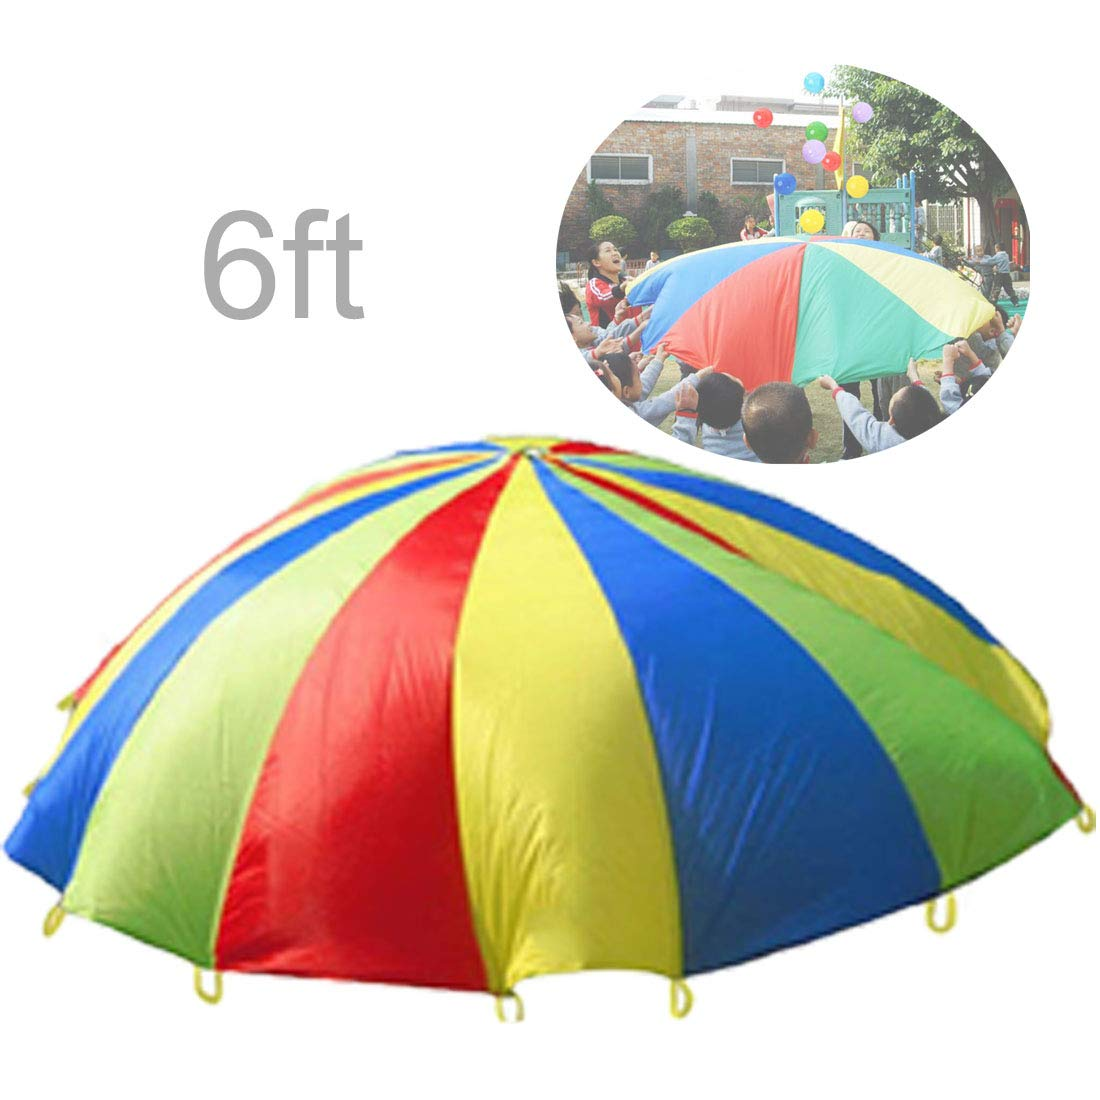 Erlsig 6 Foot Multicolored Play Parachute for Kids with 8 Handles Outdoor Camping Tent Picnic Mat Cooperative Games Birthday Gift with Bags for 3-8 Year Kids